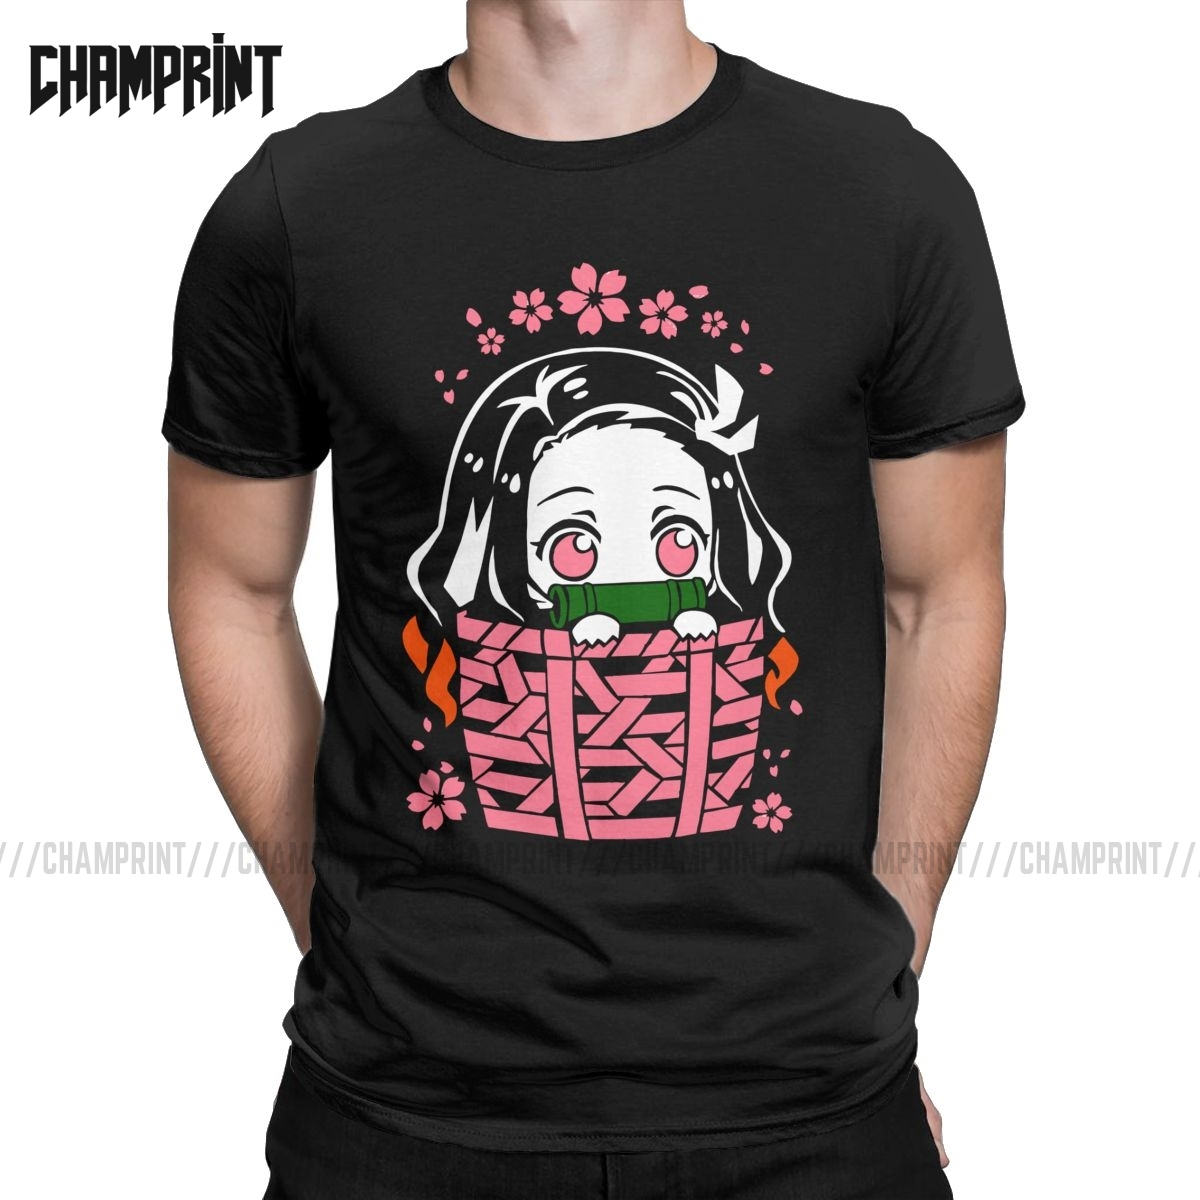 Nezuko T-Shirts Men Cotton T Shirt Demon Slayer Kimetsu No Yaiba Kamado Tanjirou Anime Manga Short Sleeve Tee Shirt 4XL 5XL